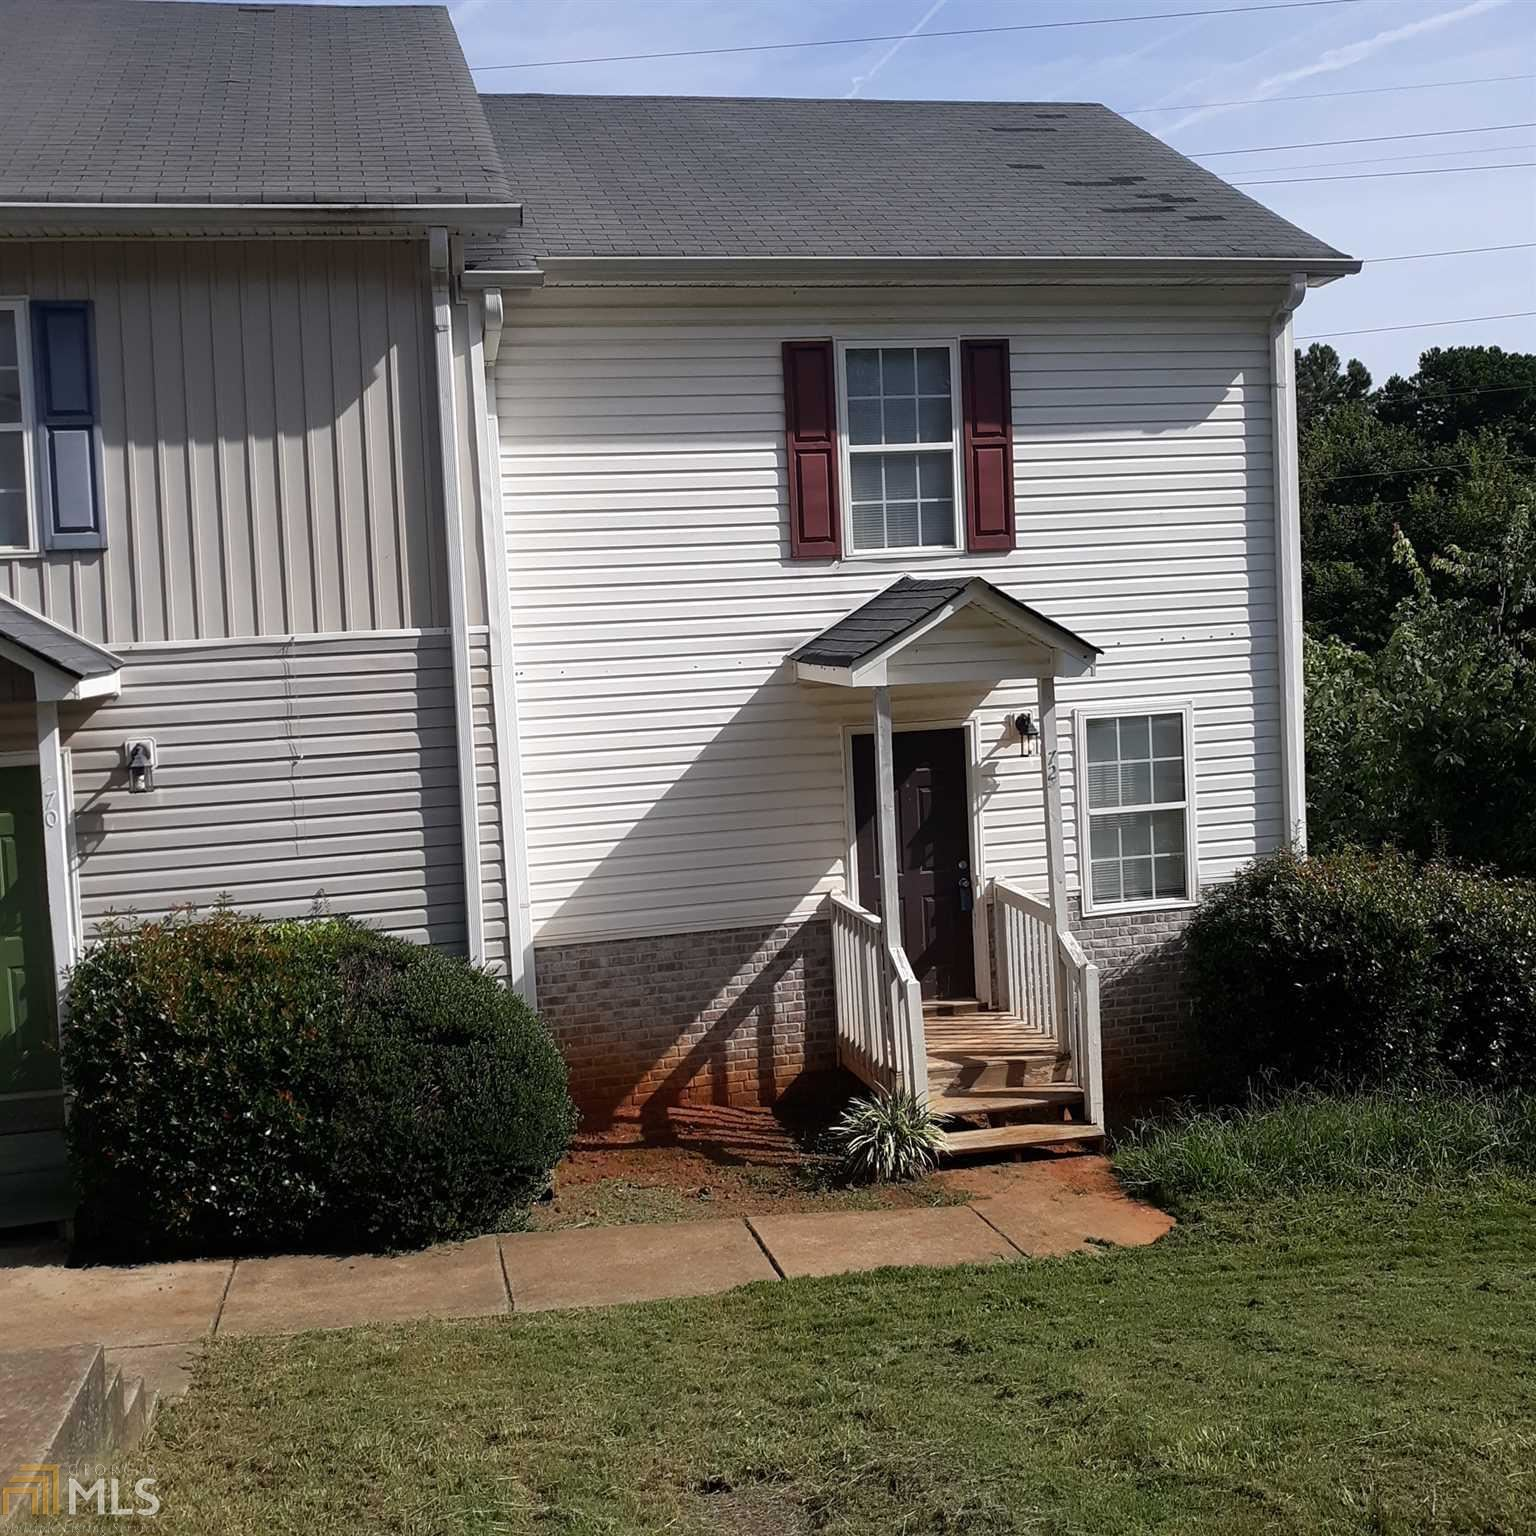 72 Fairview St, Cartersville, GA 30120 - #: 8846794